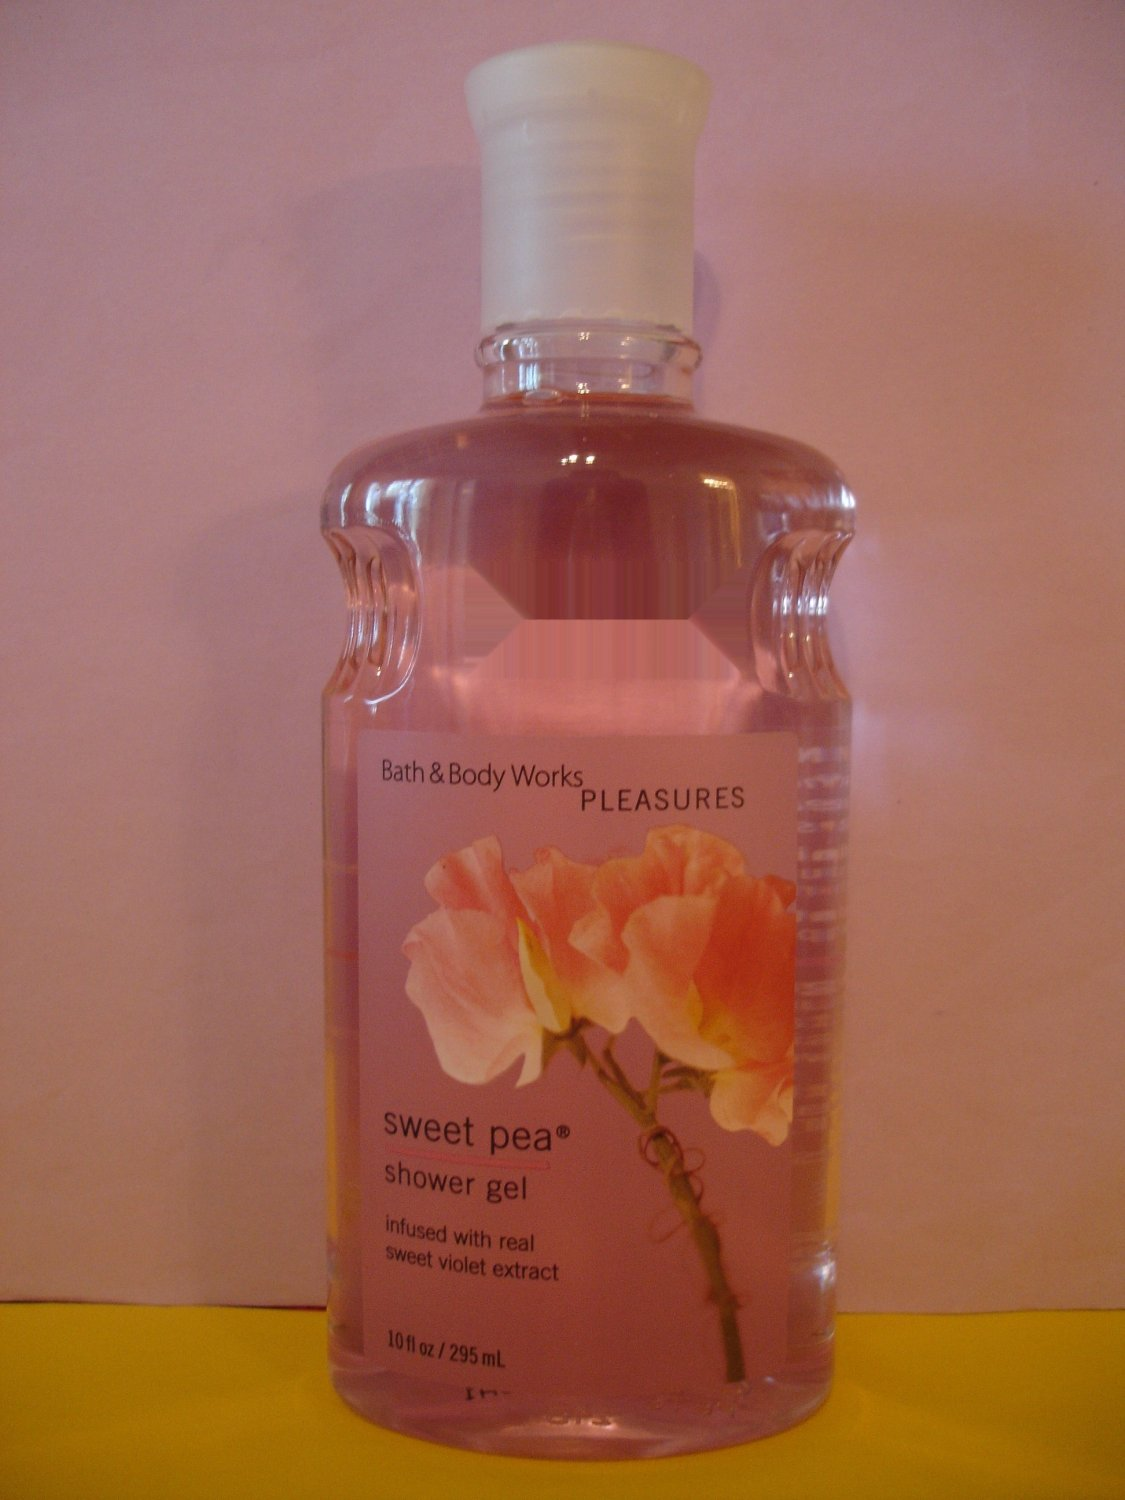 Bath And Body Works Sweet Pea Original Shower Gel 10 Oz Large